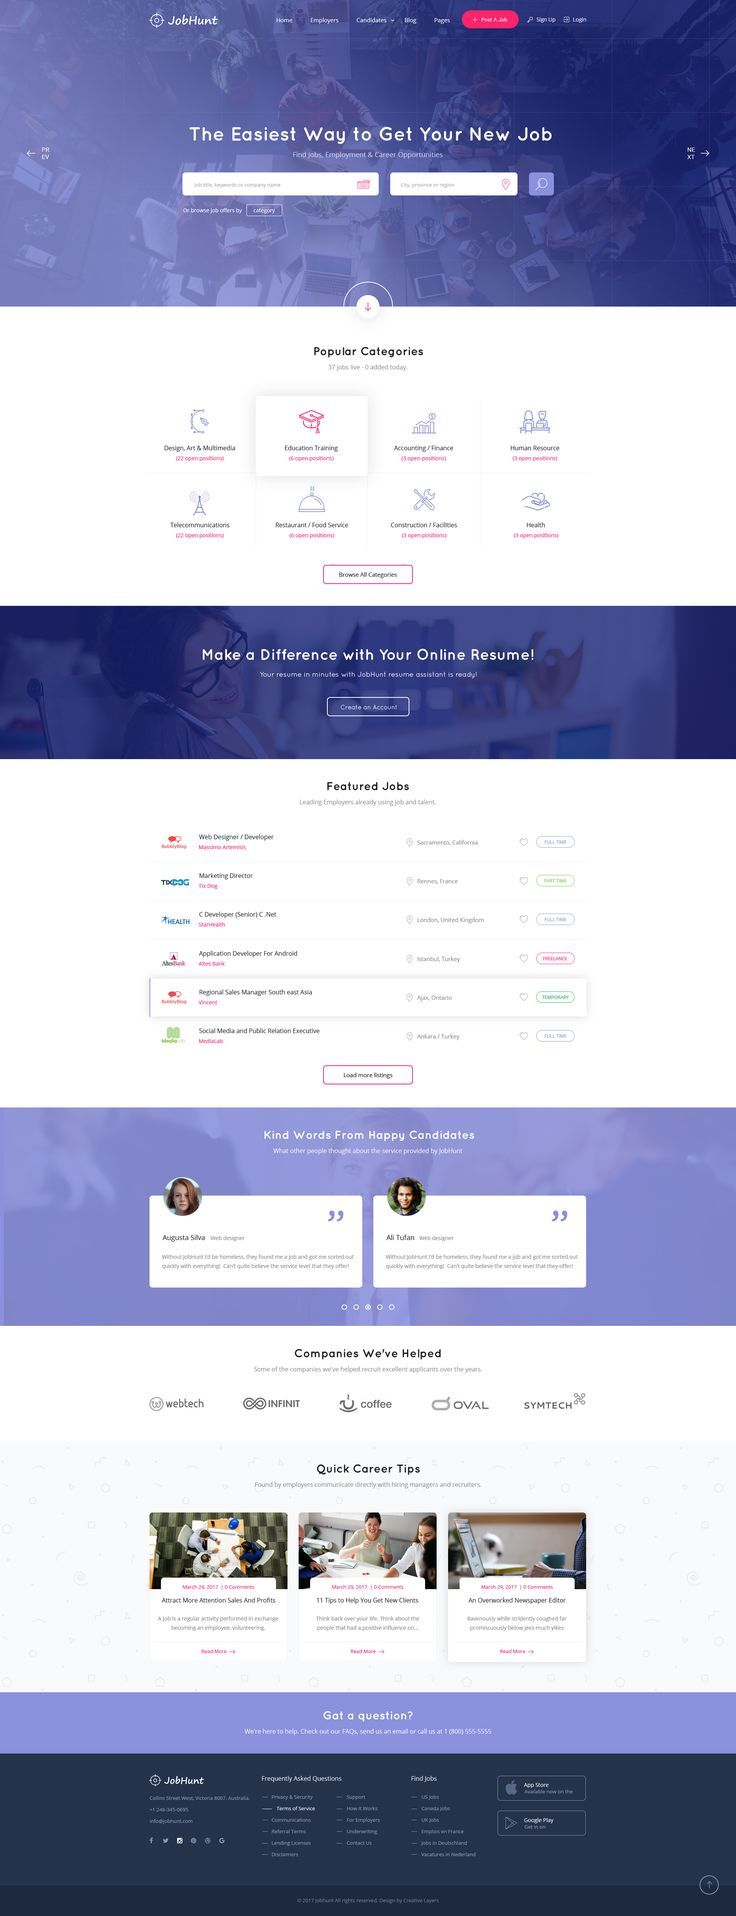 indeed resume upload%0A Jobhunt  The Most Popular Job Board PSD Template